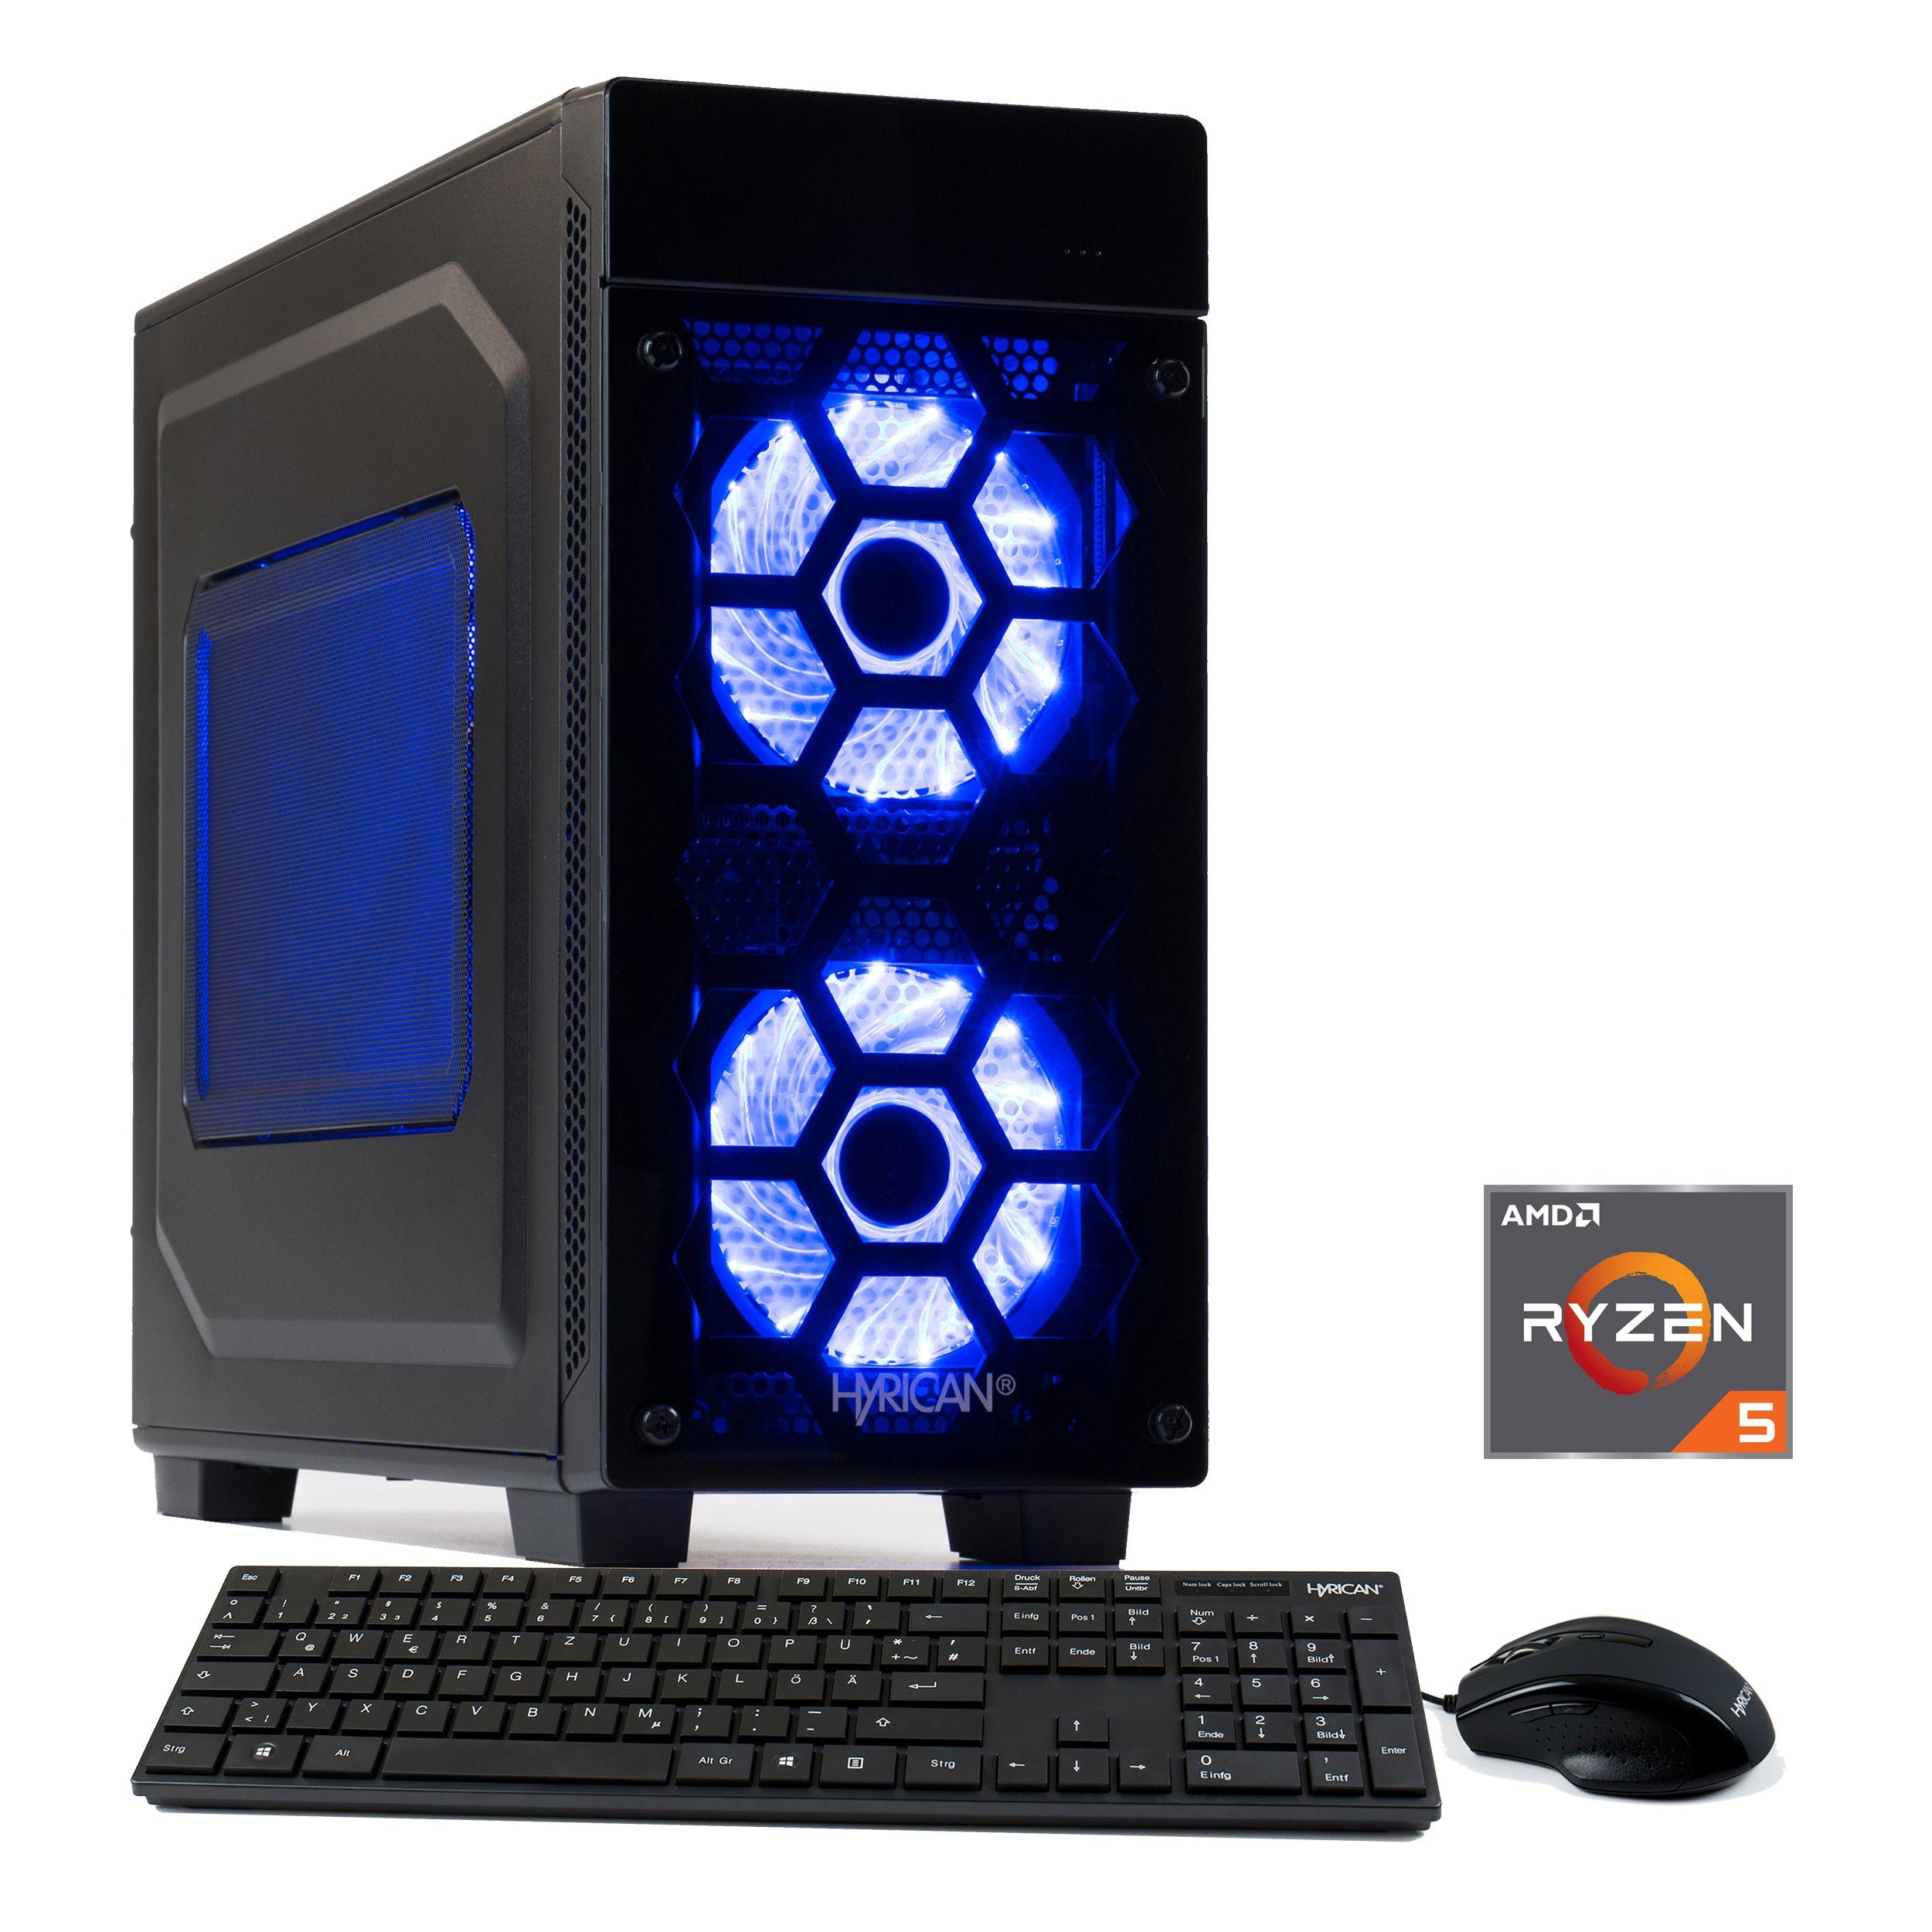 HYRICAN Gaming PC Ryzen? 5 2600, 16GB, SSD + HDD, GeForce® GTX 1080 »Striker 6102«